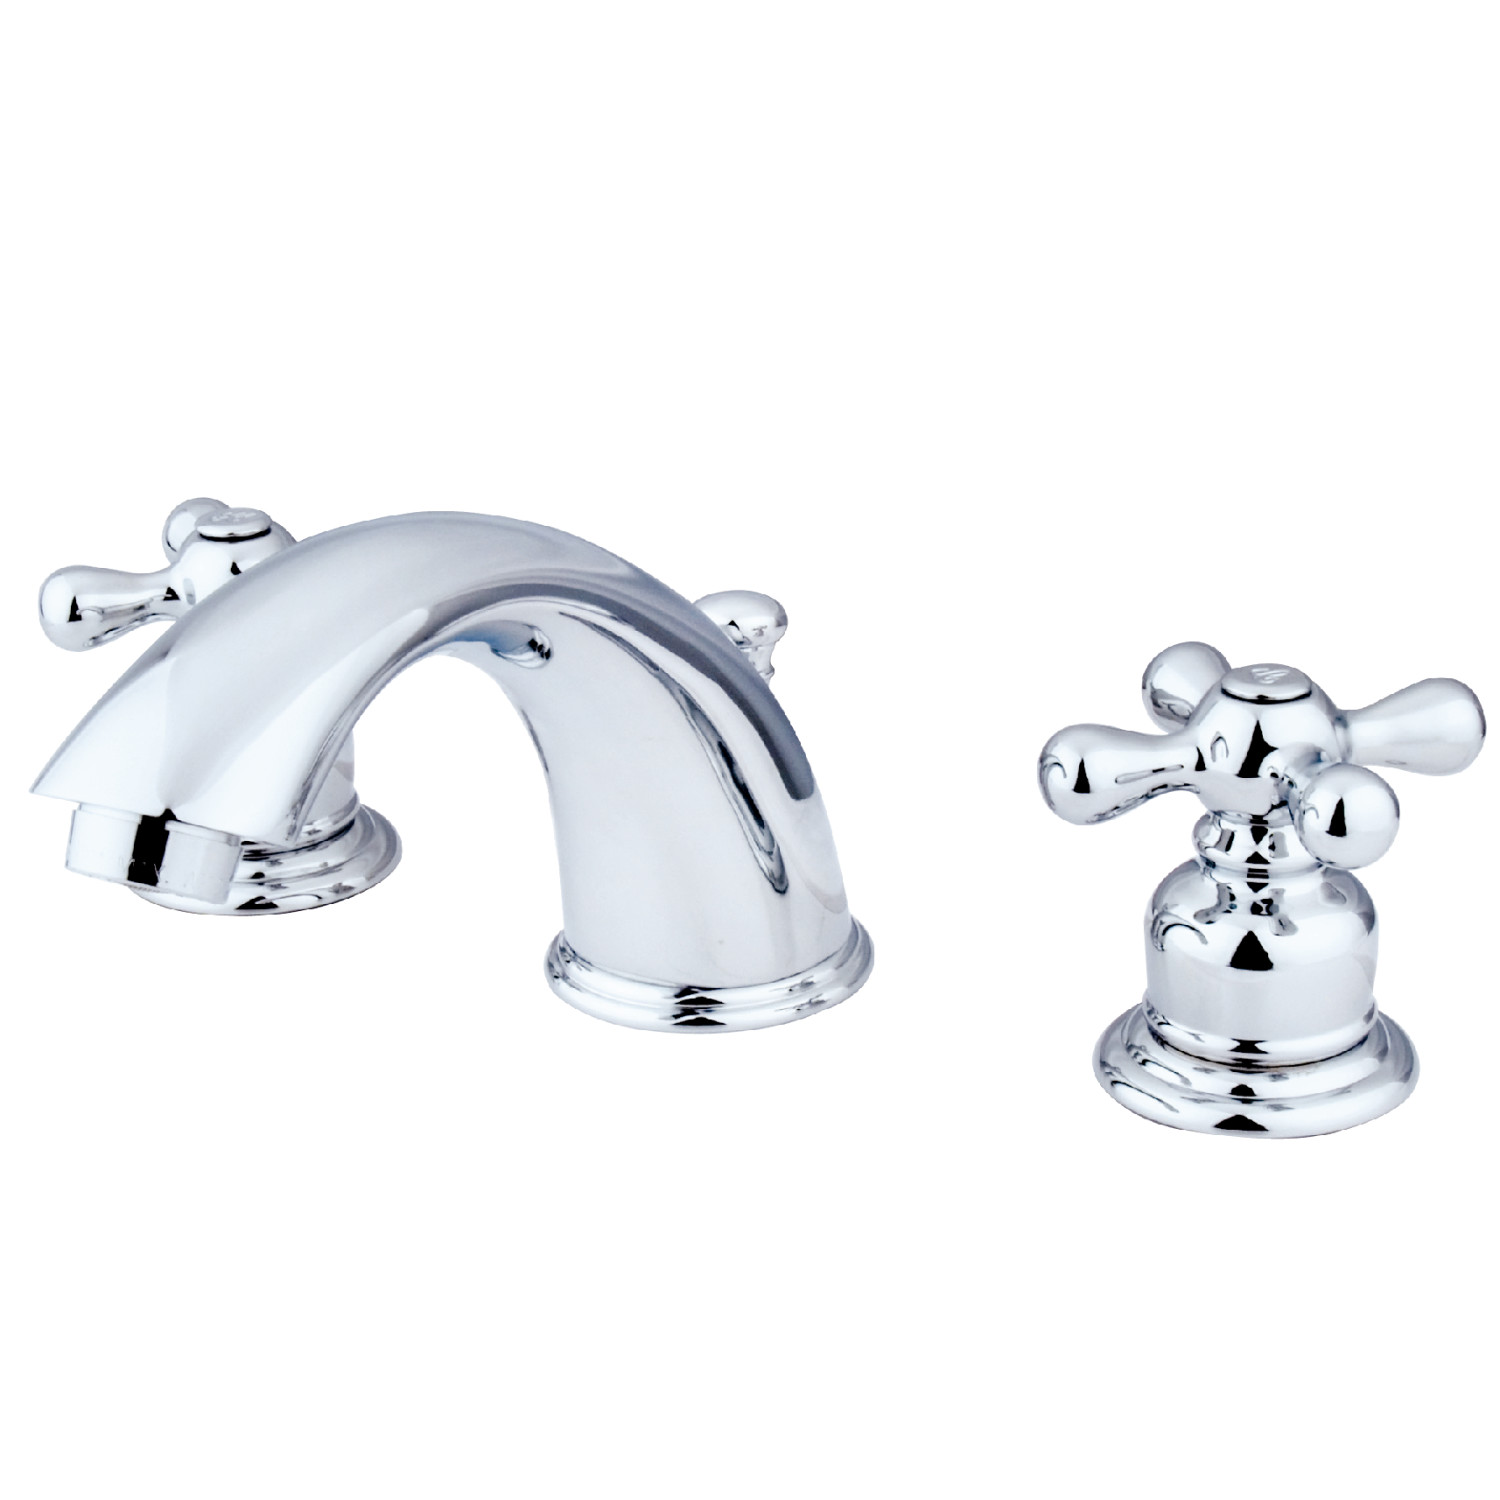 Traditional 2-Handle 3-Hole Deck Mounted Widespread Bathroom Faucet with Plastic Pop-Up in Polished Chrome with 4 Color Options